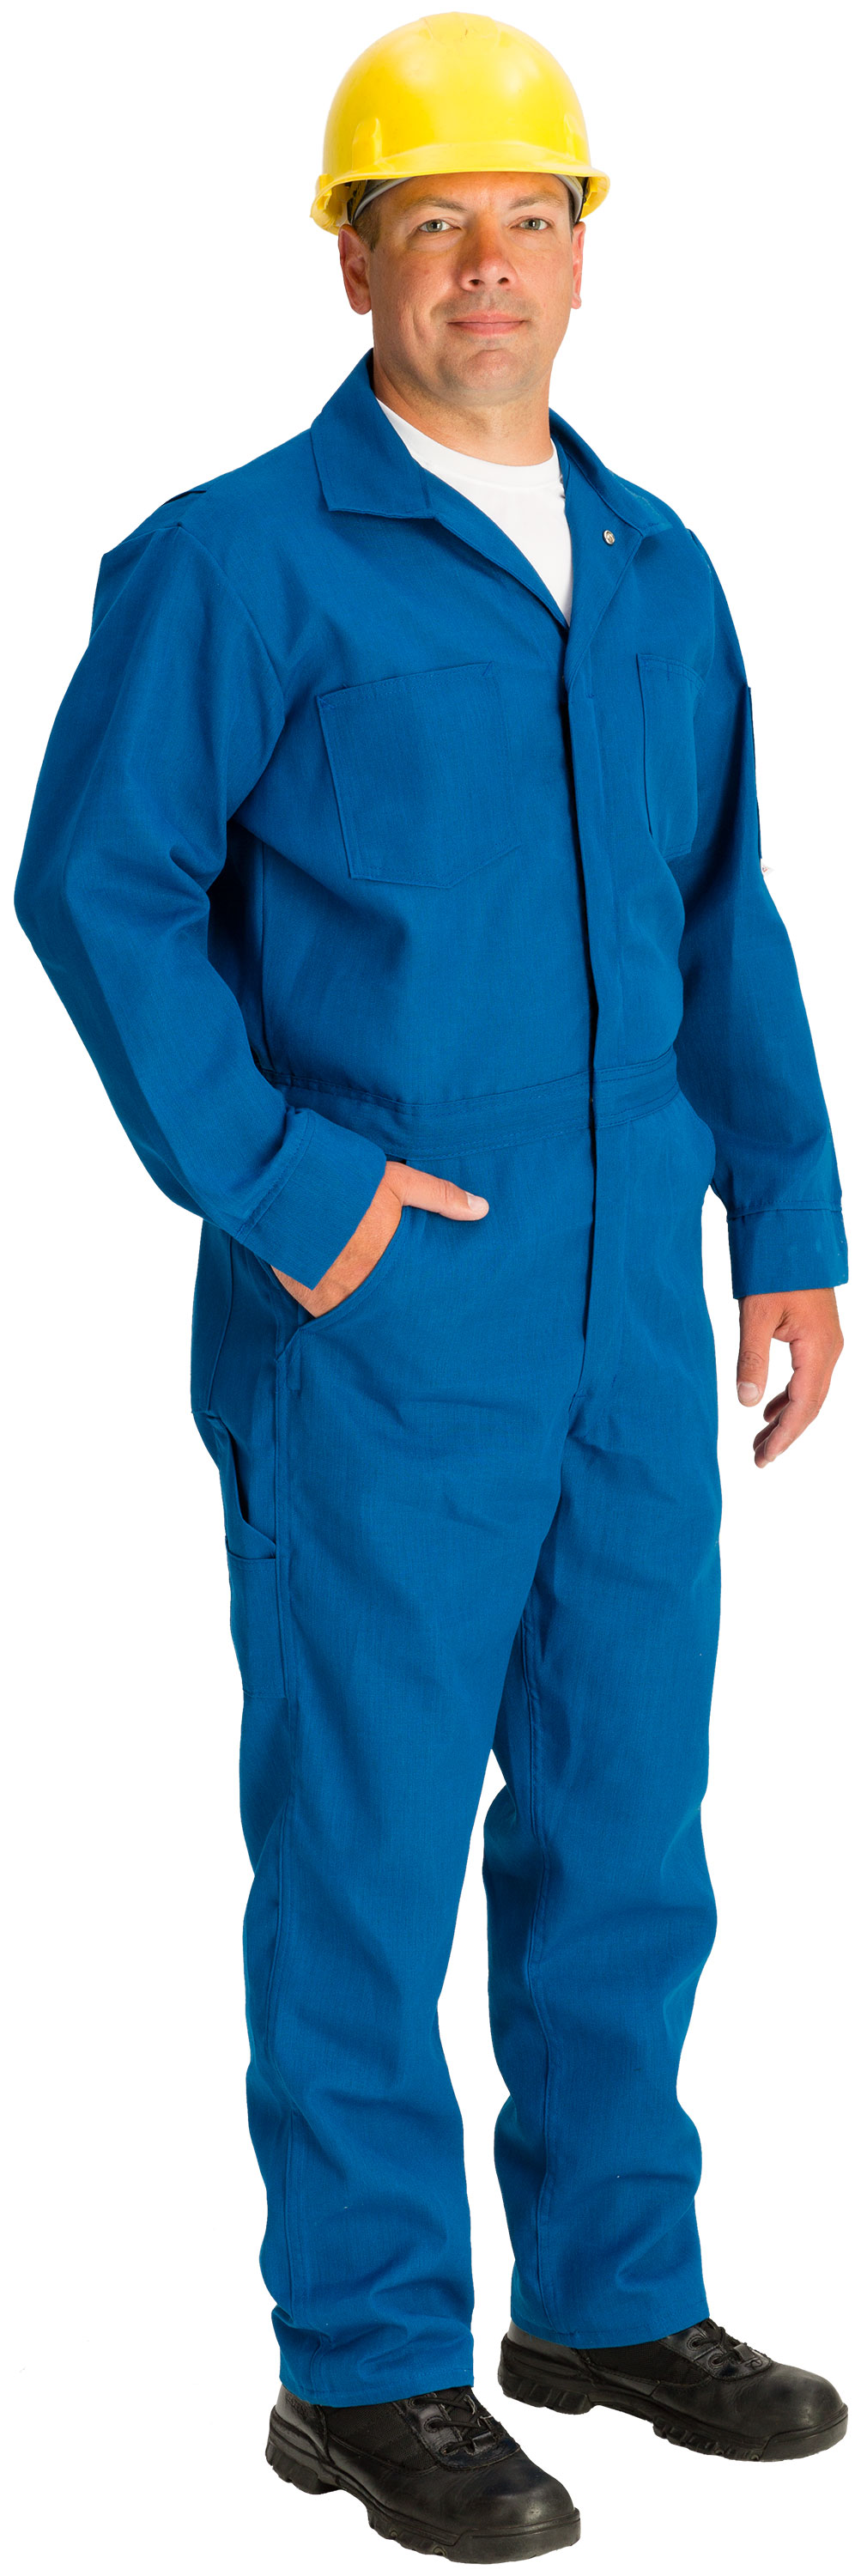 Nomex® 4.5 oz. Coverall-Topps Safety Apparel